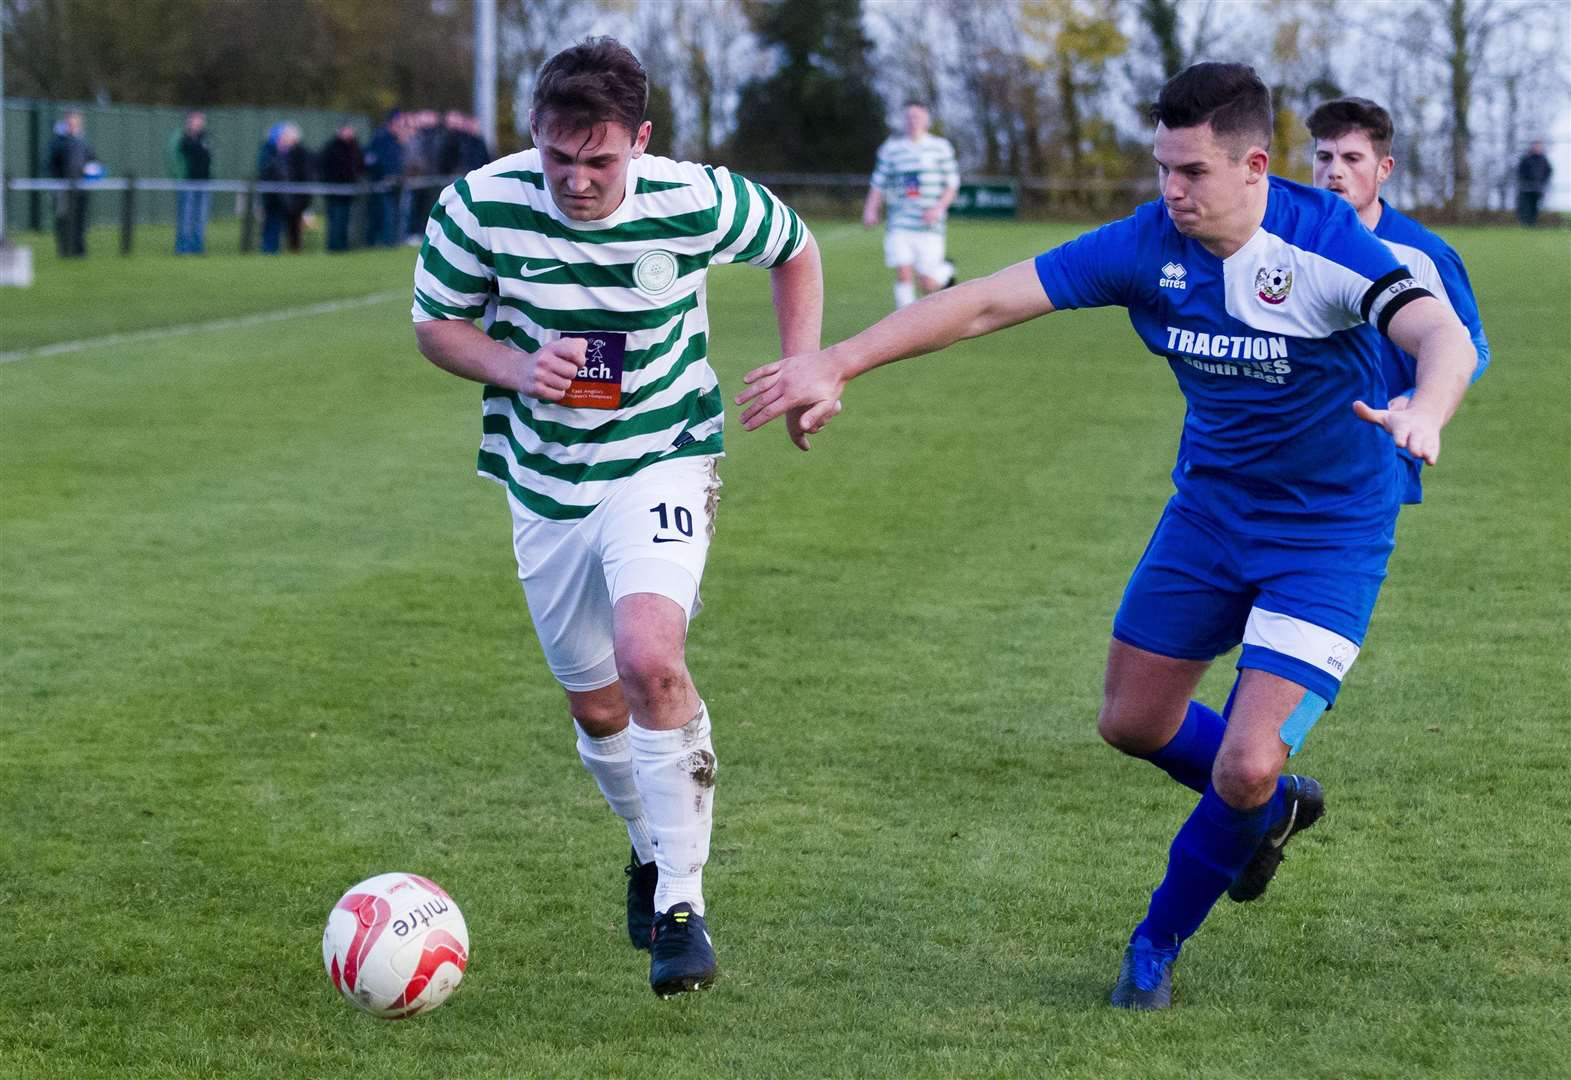 Castlemen aiming to establish in Prem